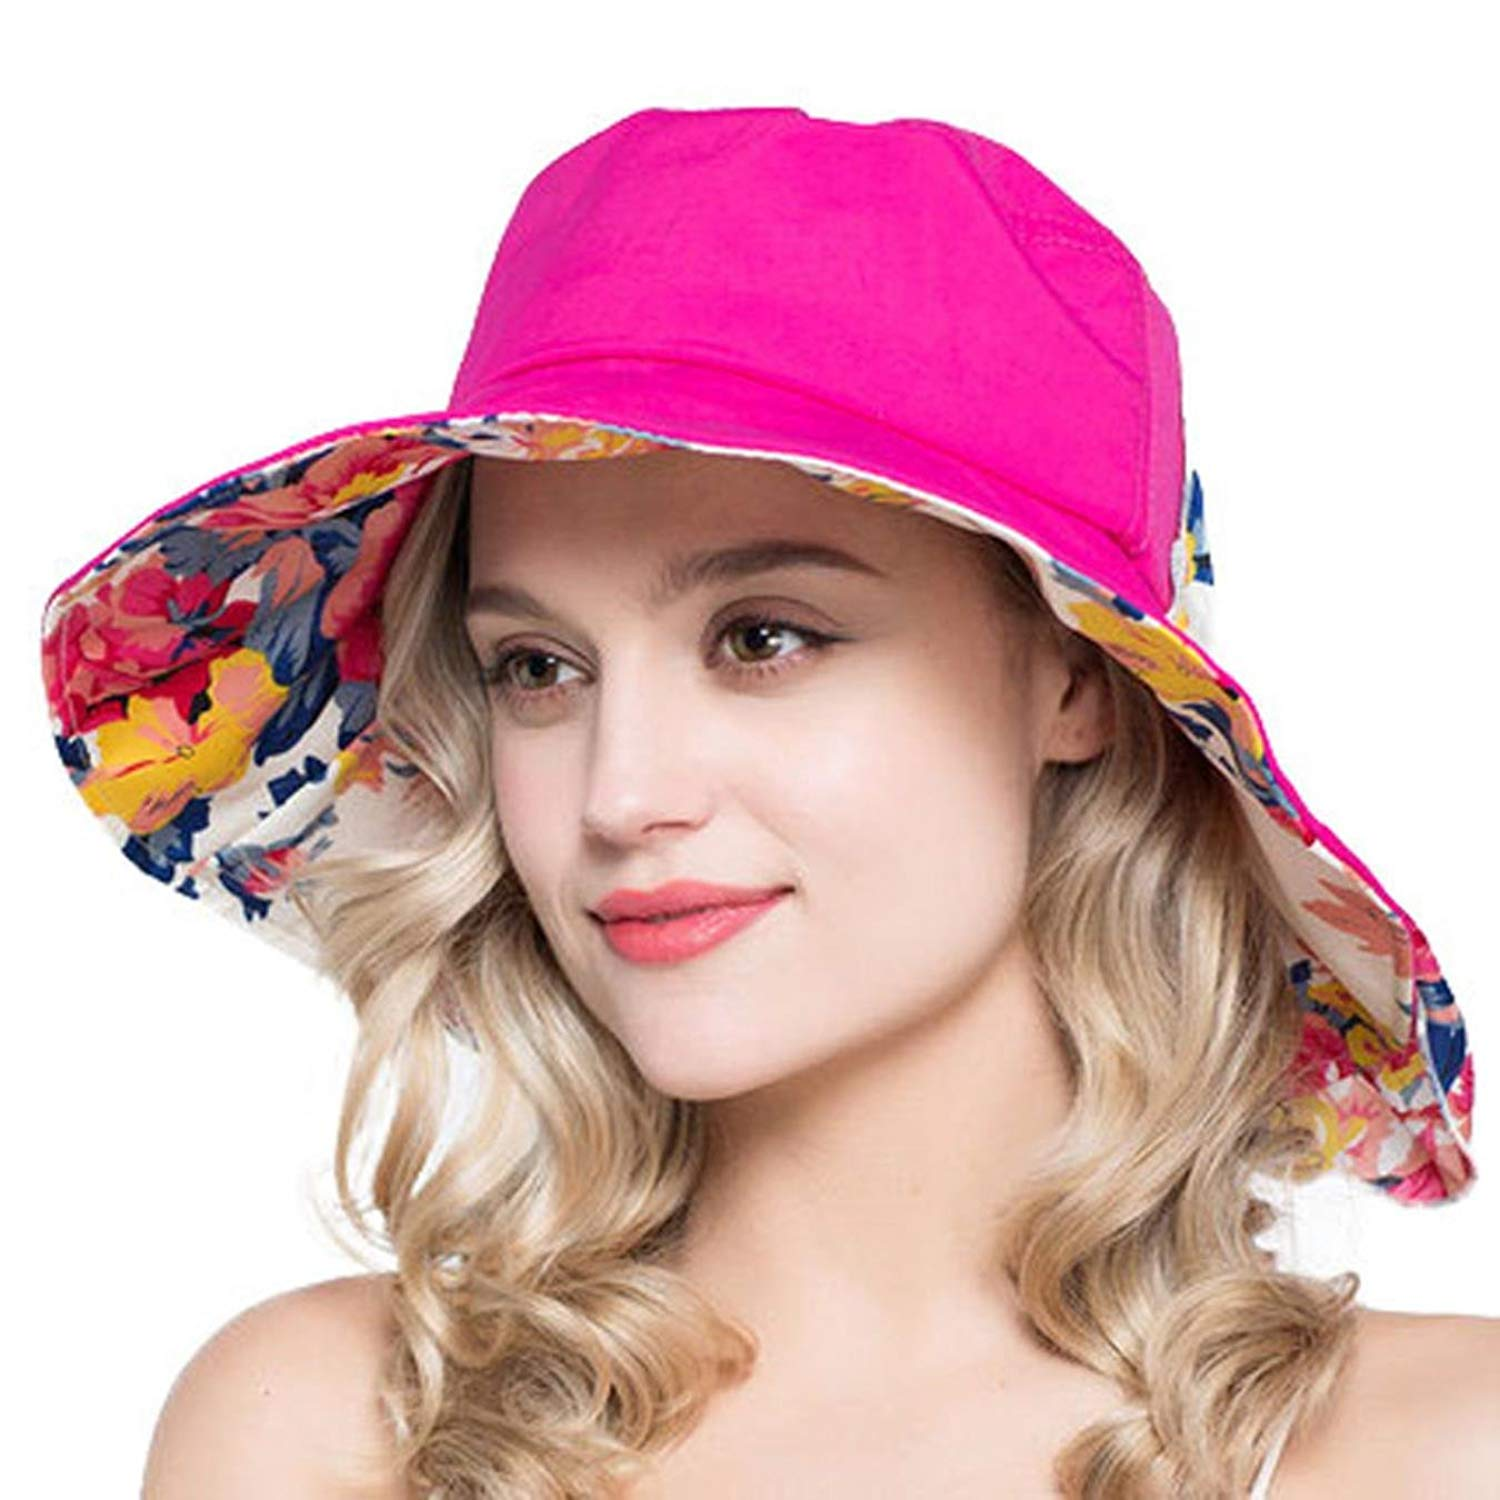 ff1c325db03 Get Quotations · Fashion Hats Ladies Summer Wide Brim UV Sunhat Women Hats  for Beach Holidays Floppy Sun Hats